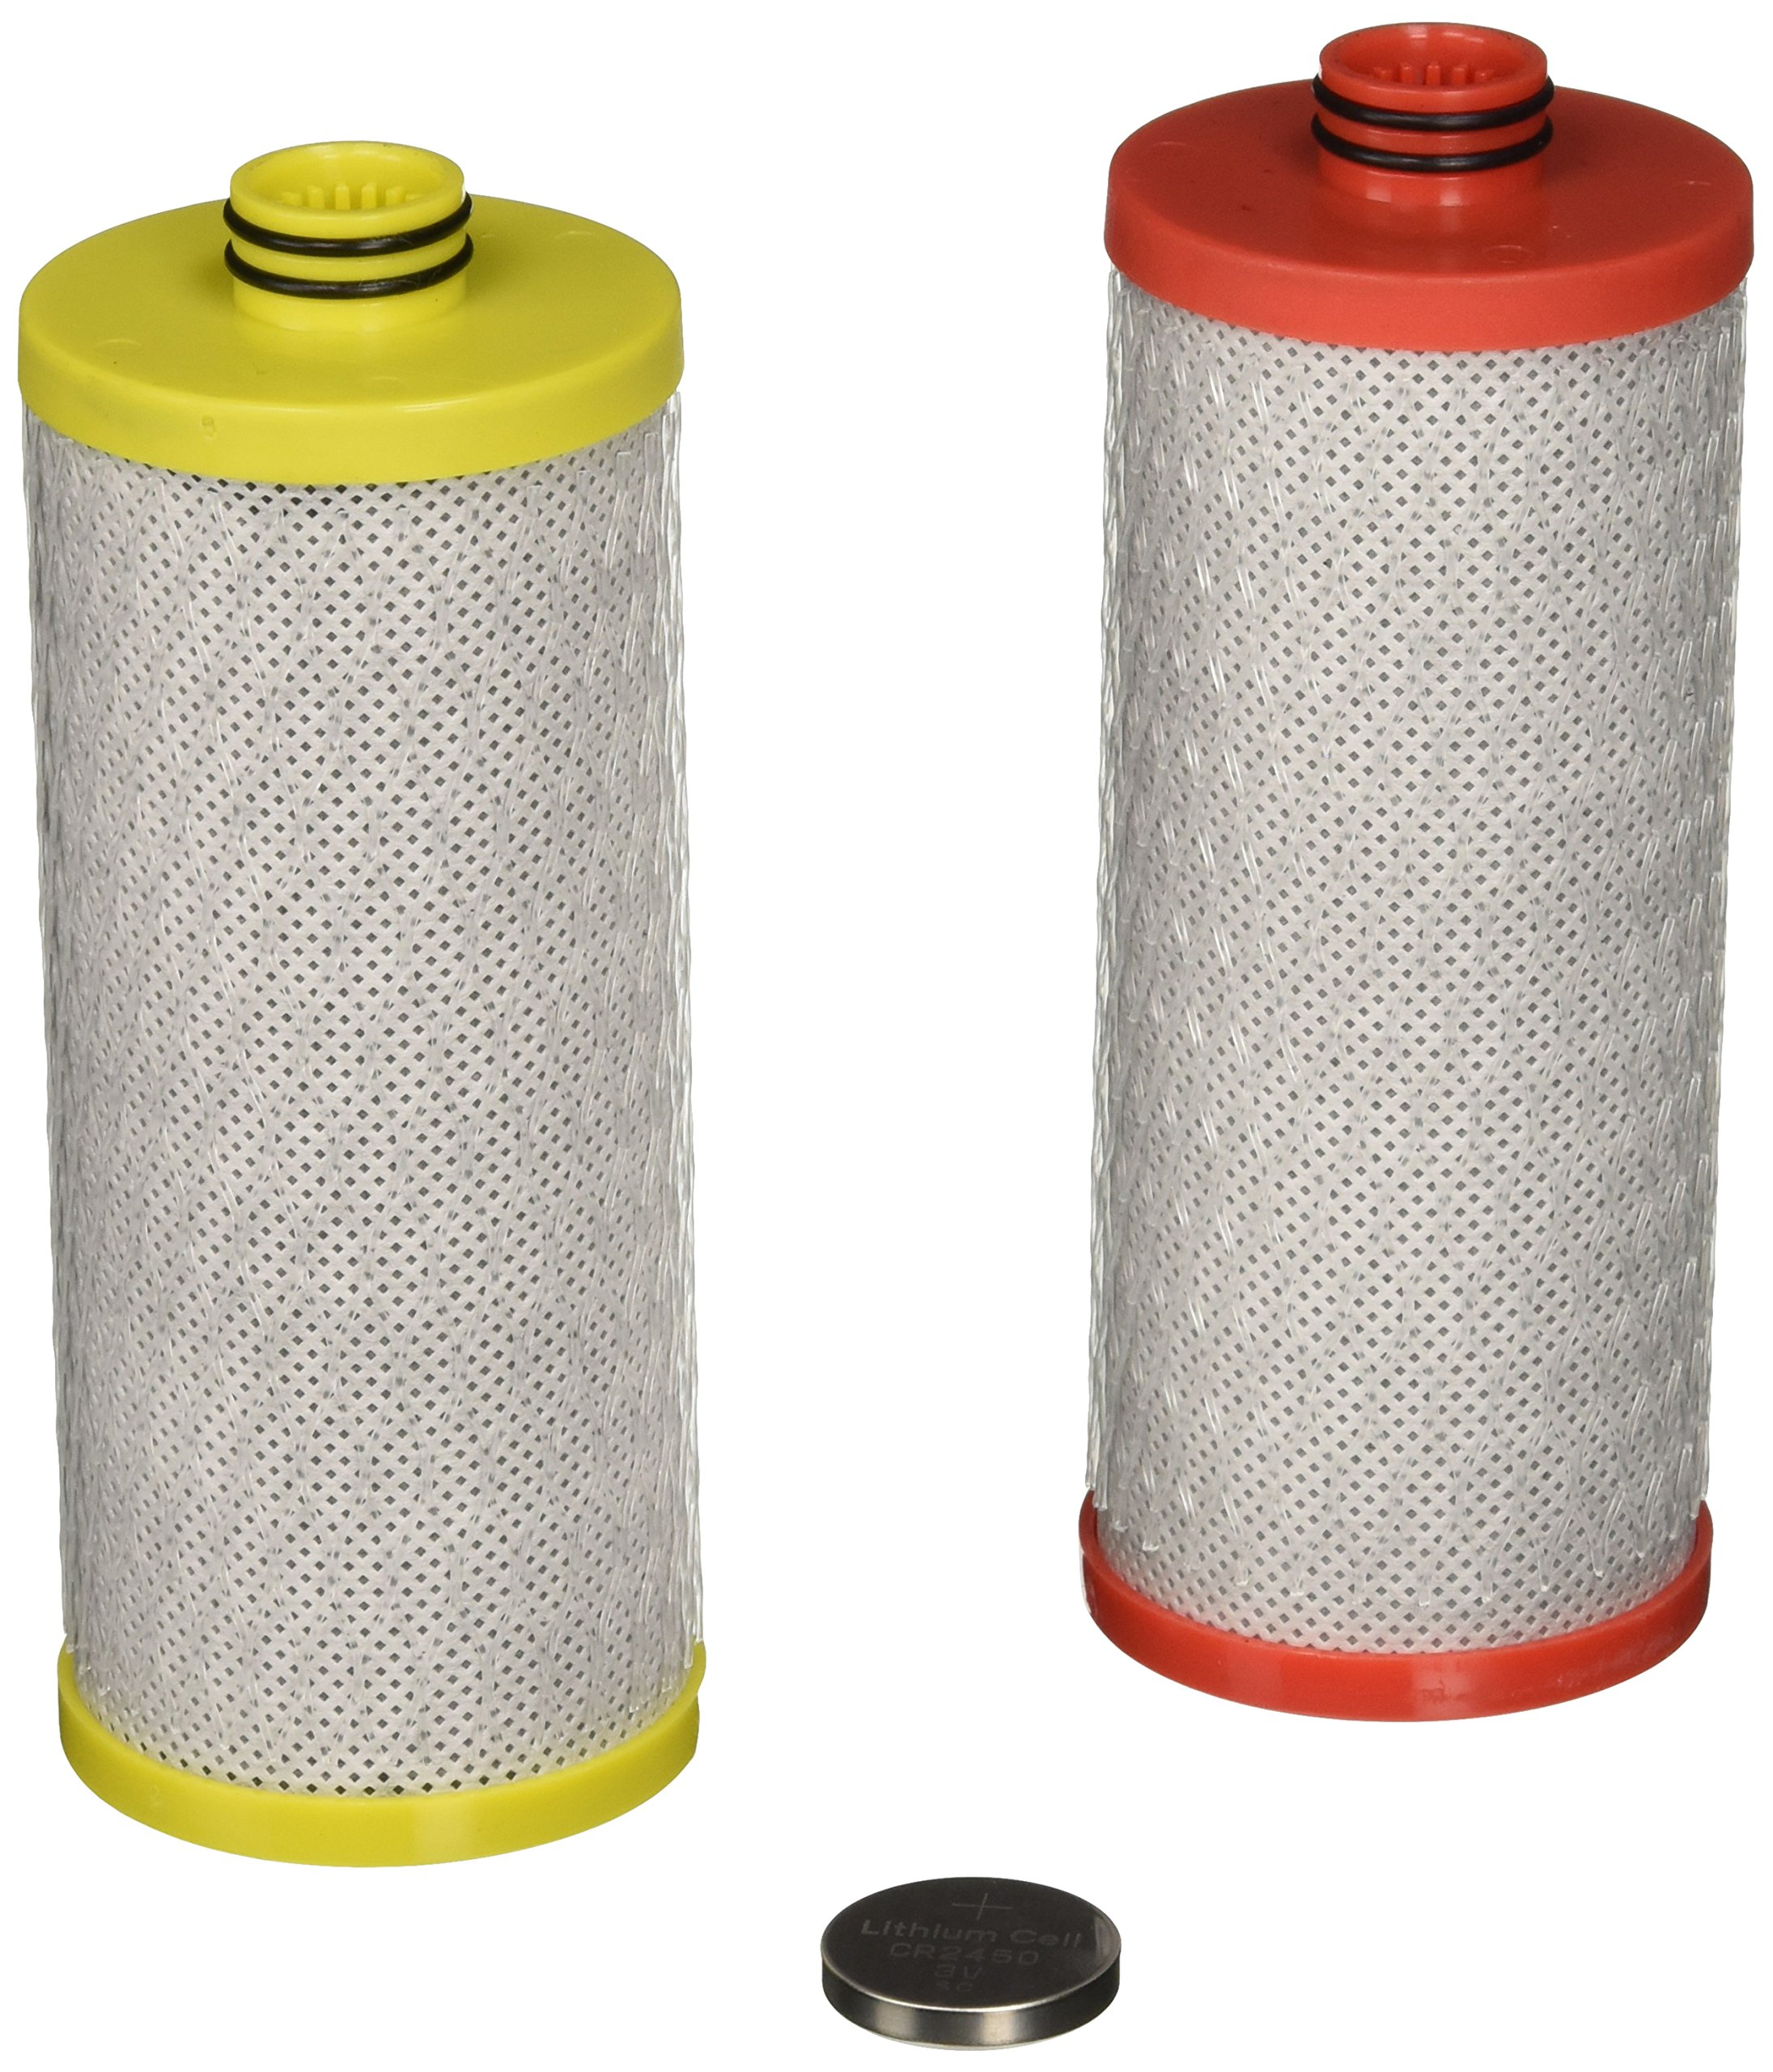 Aquasana Replacement Filter Cartridges for 2-Stage Under Sink Water Filtration System by Aquasana